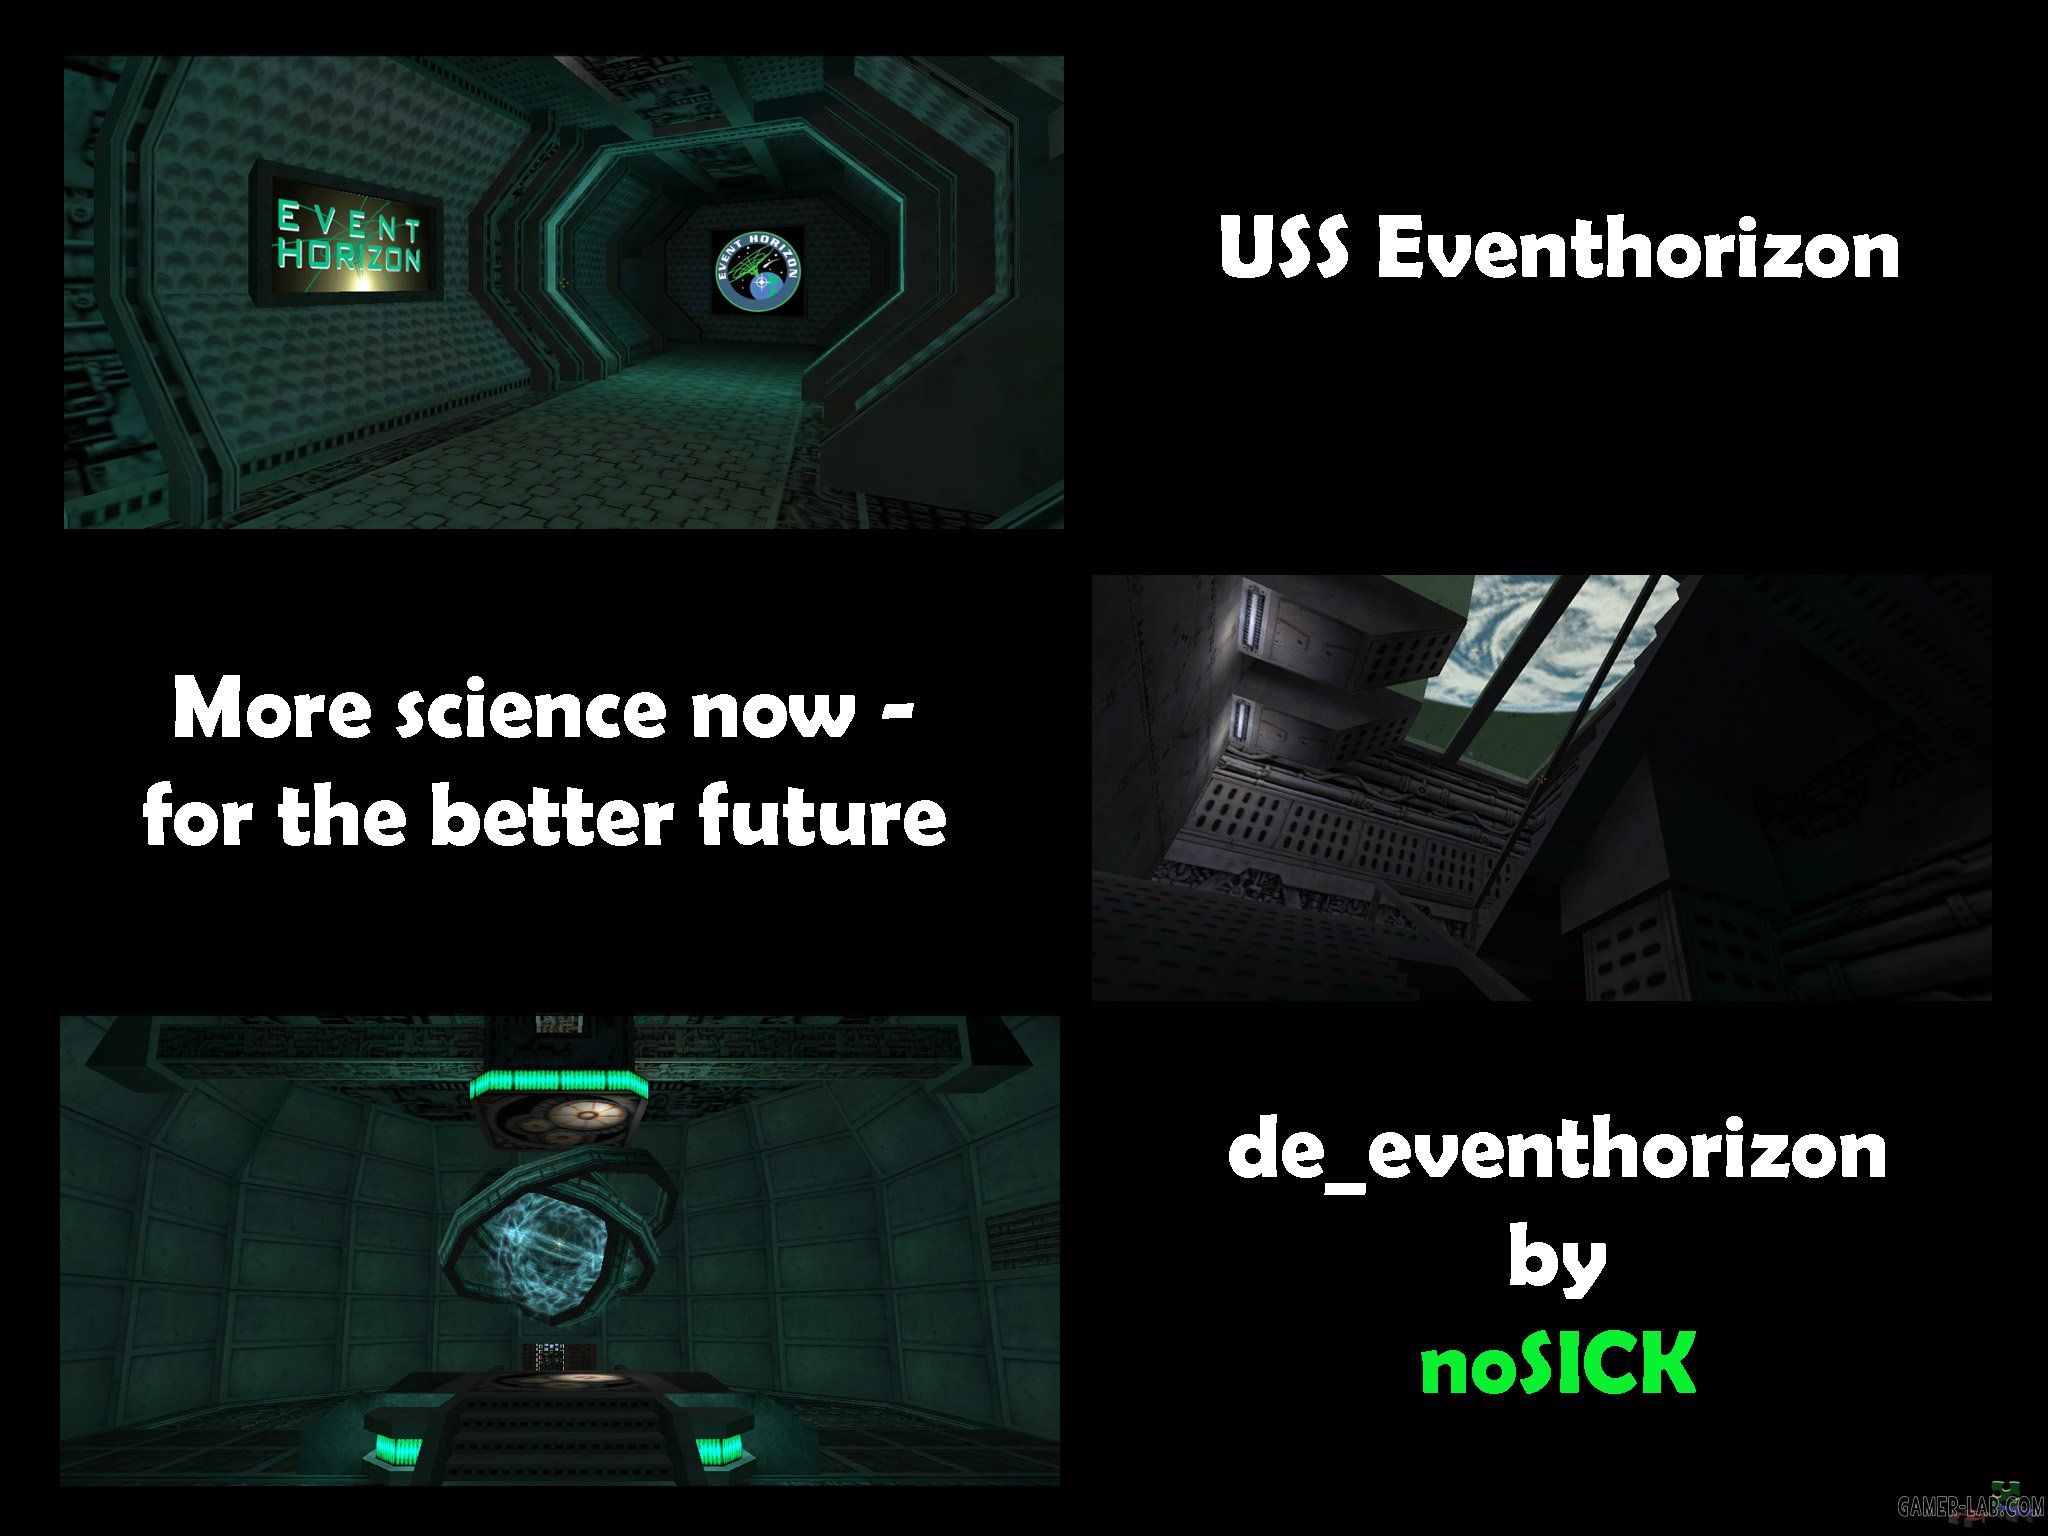 de_eventhorizon